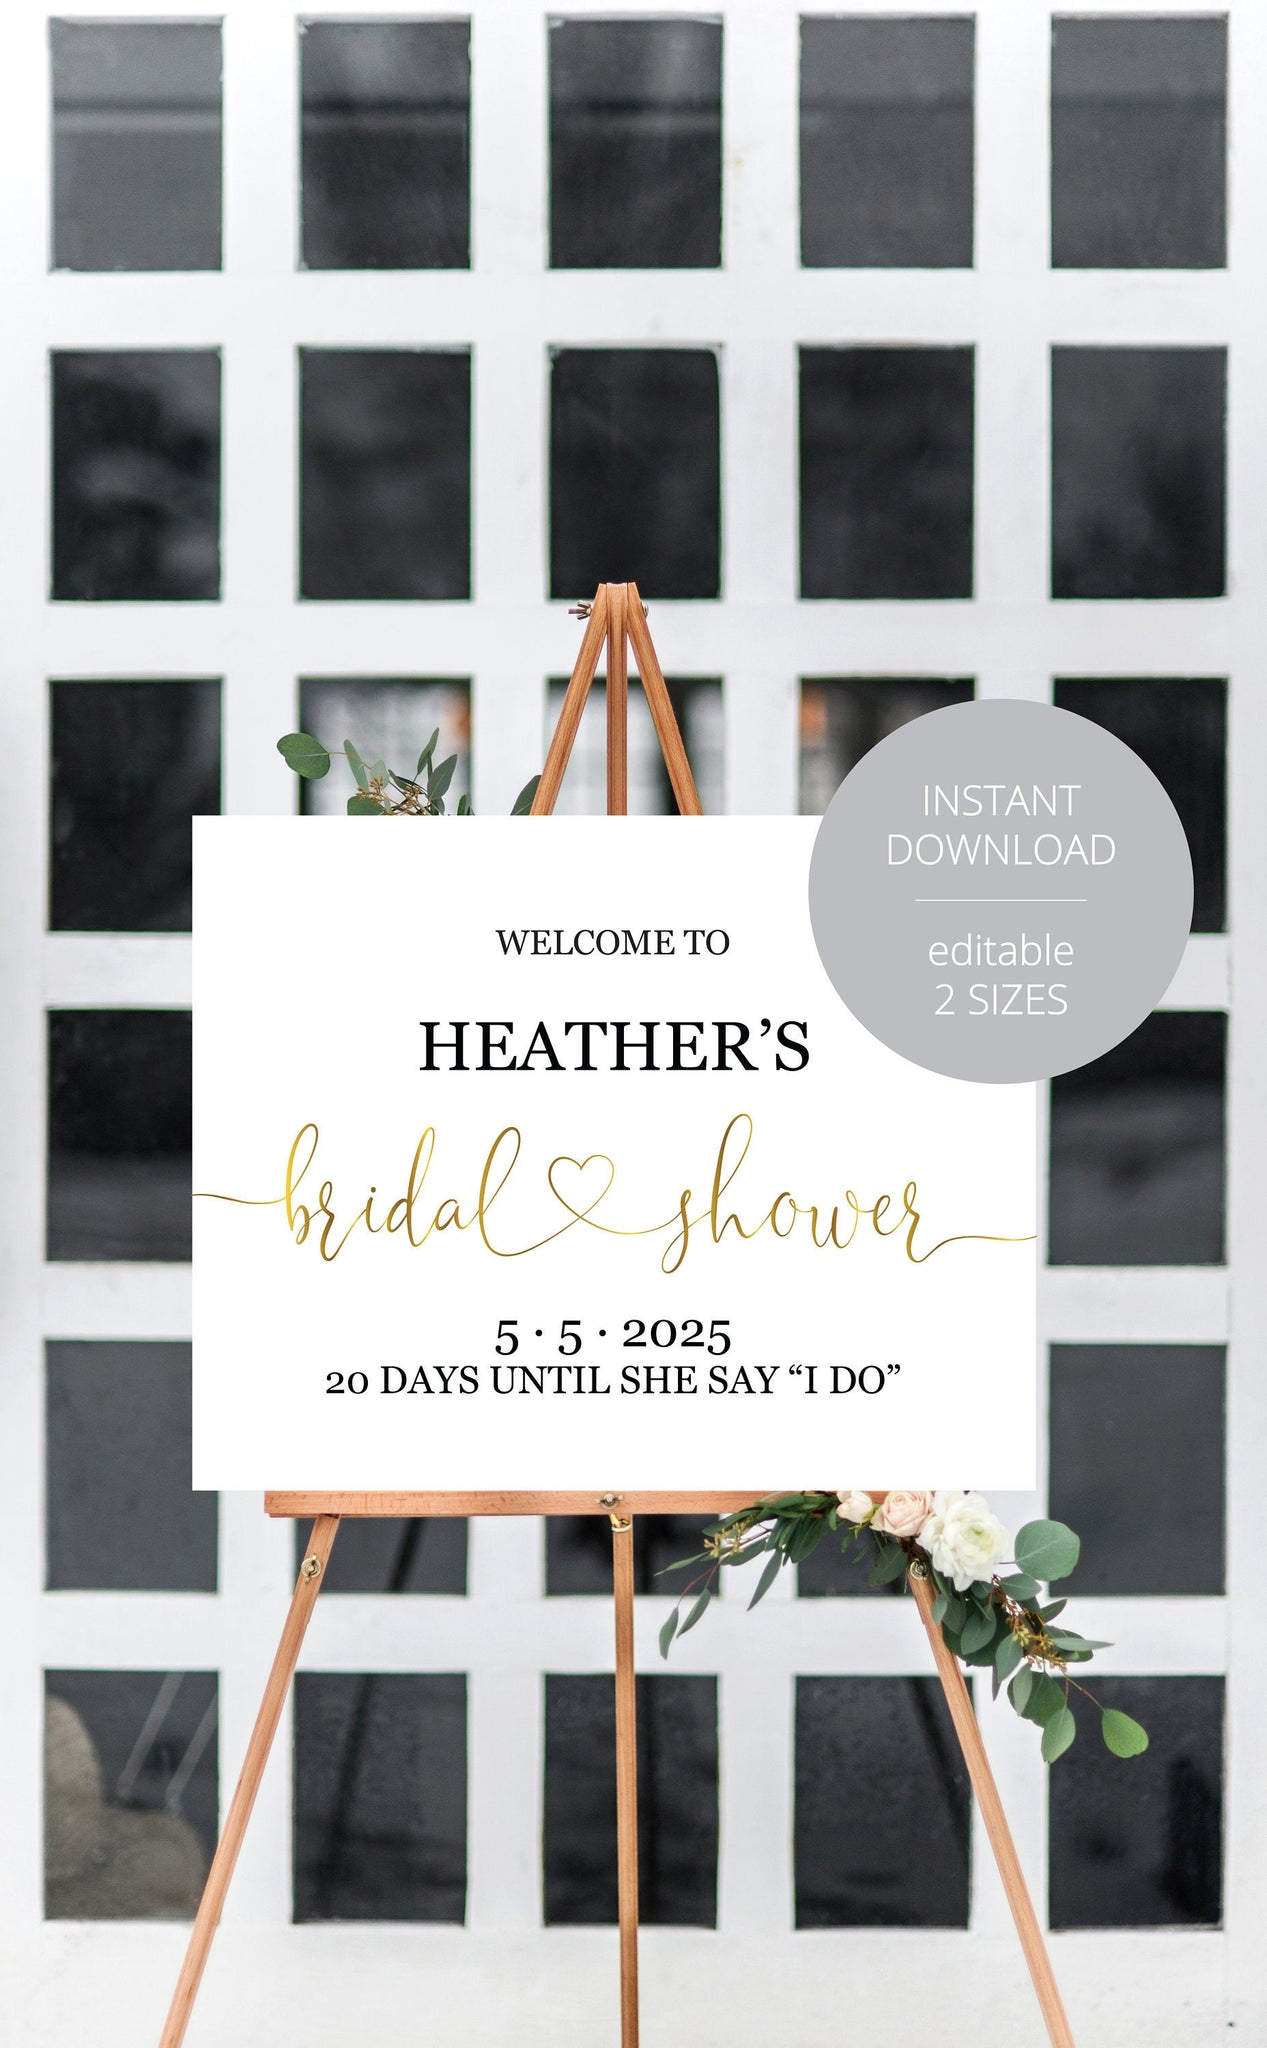 Bridal Shower Welcome Sign Printable Template Editable Instant Download Wedding Décor Gold - Heather